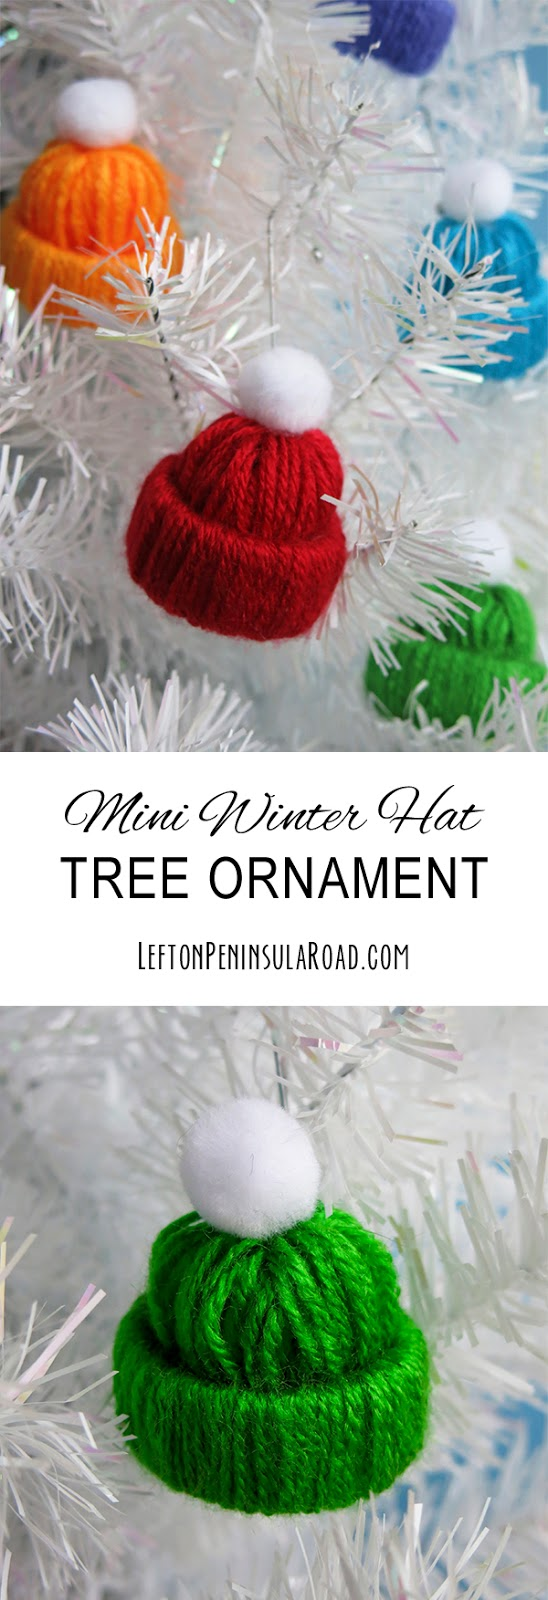 Miniature Winter Hat Christmas tree Ornament Craft